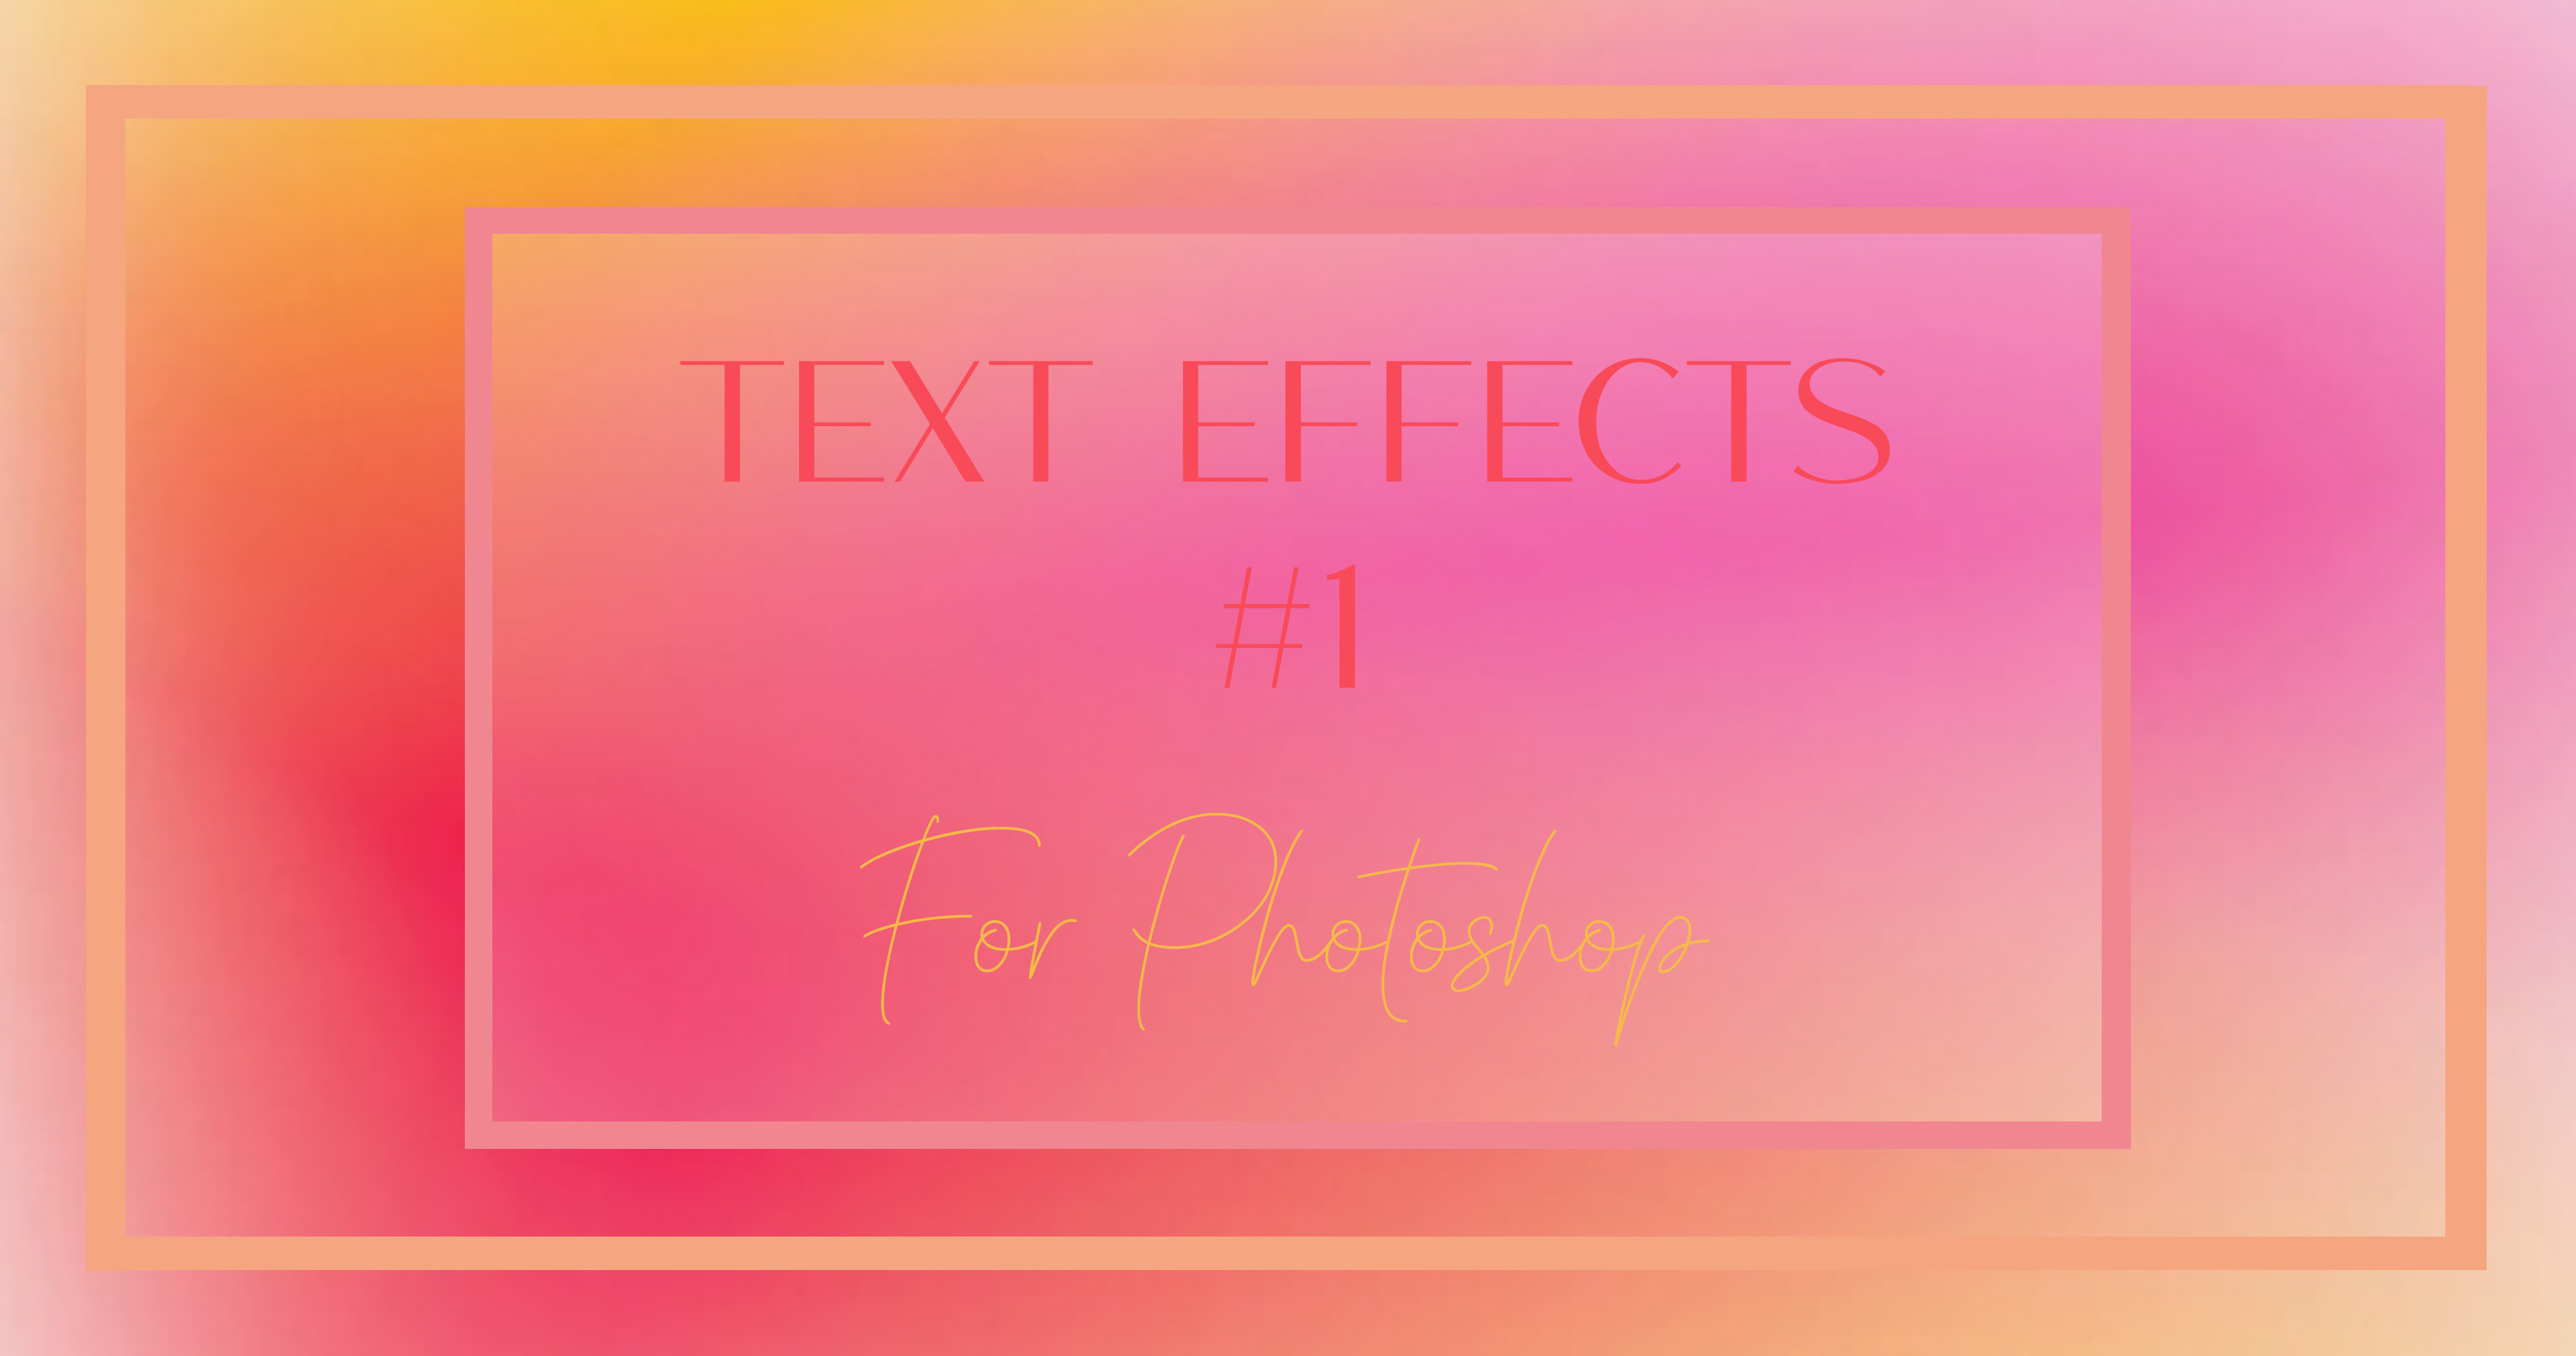 Photoshop Text Effects #1